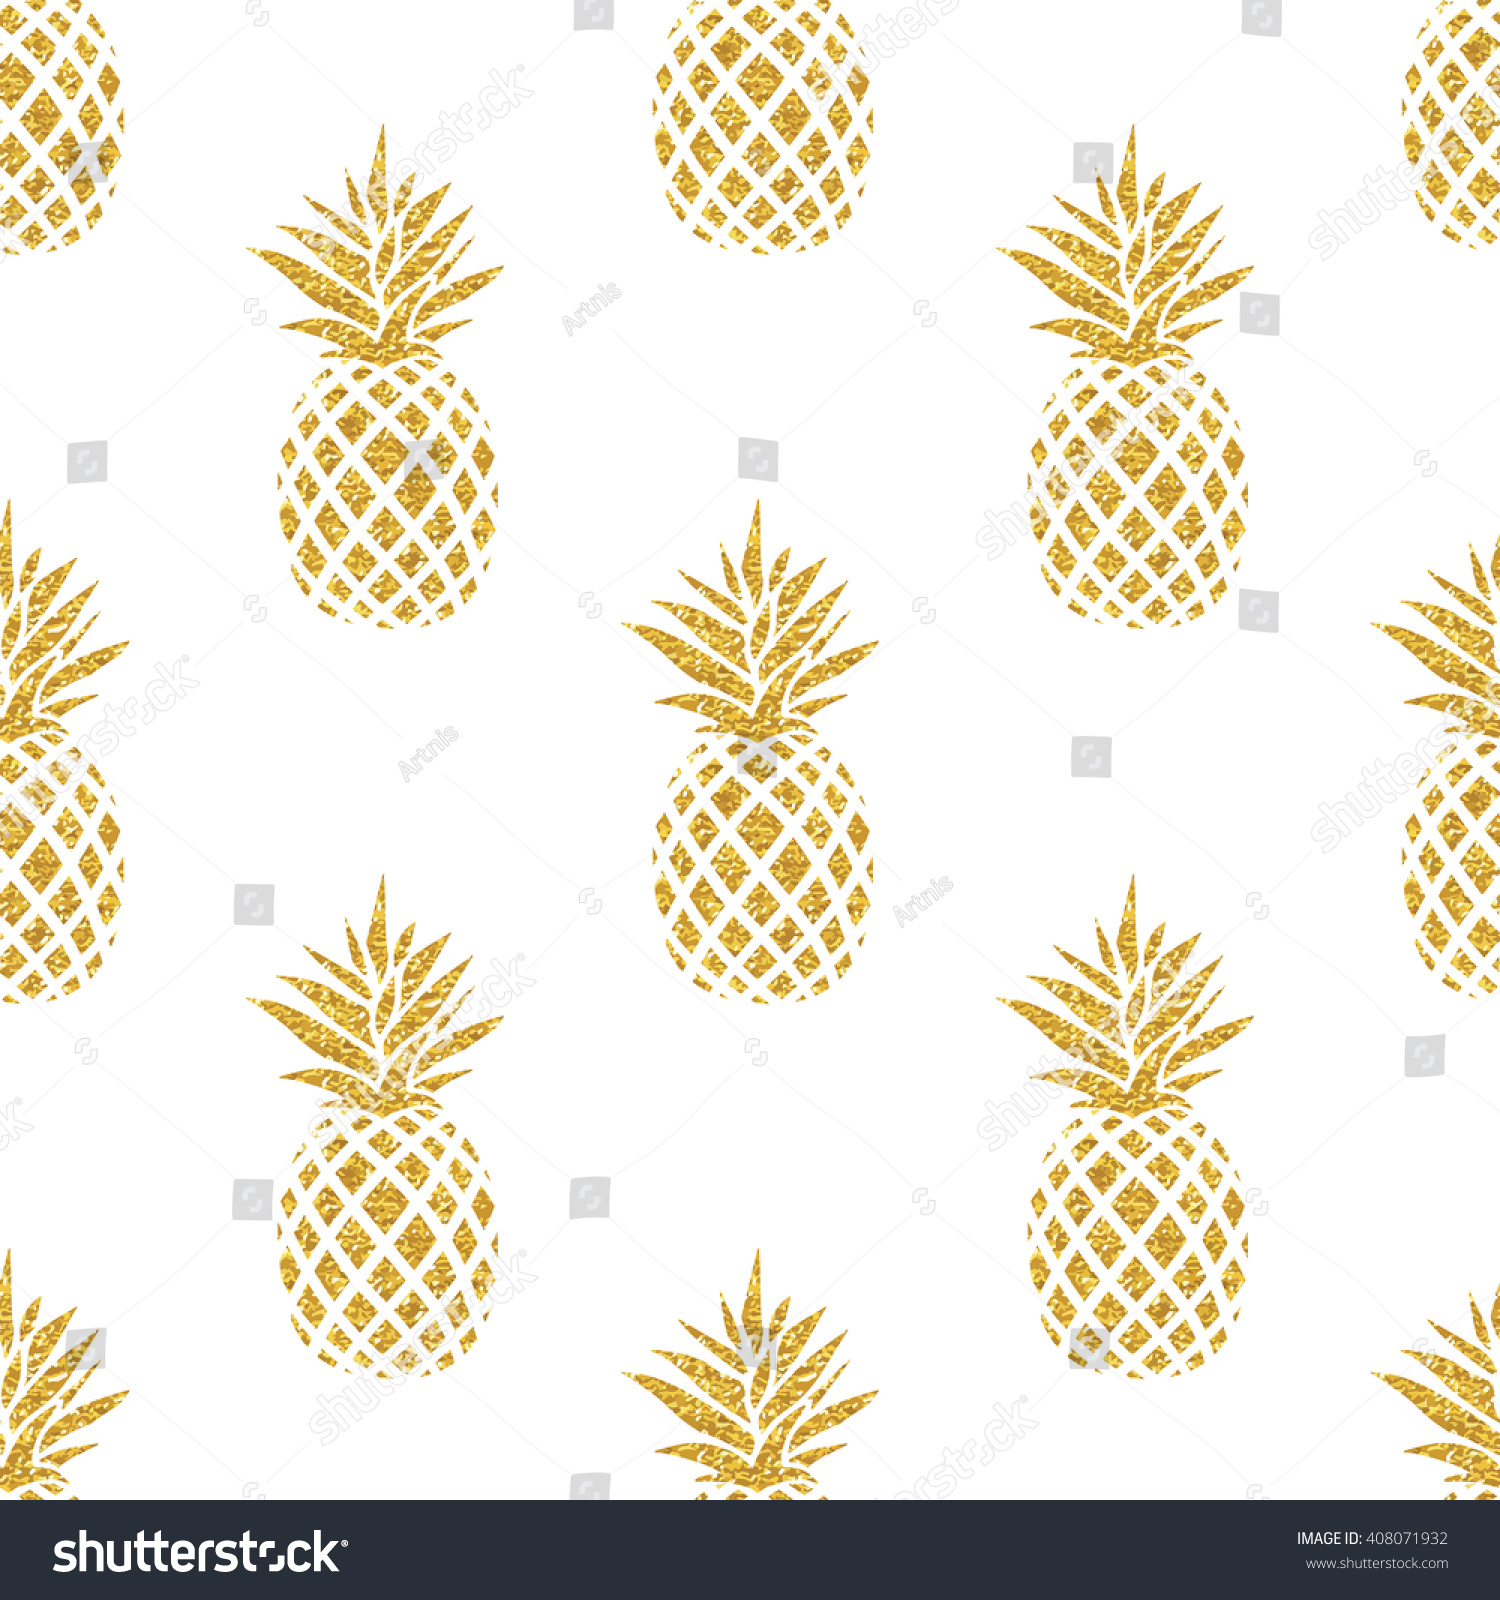 Stock Vector Seamless Summer Gold Pineapple On Colored Background Pattern In Fruit Illustration Jpg